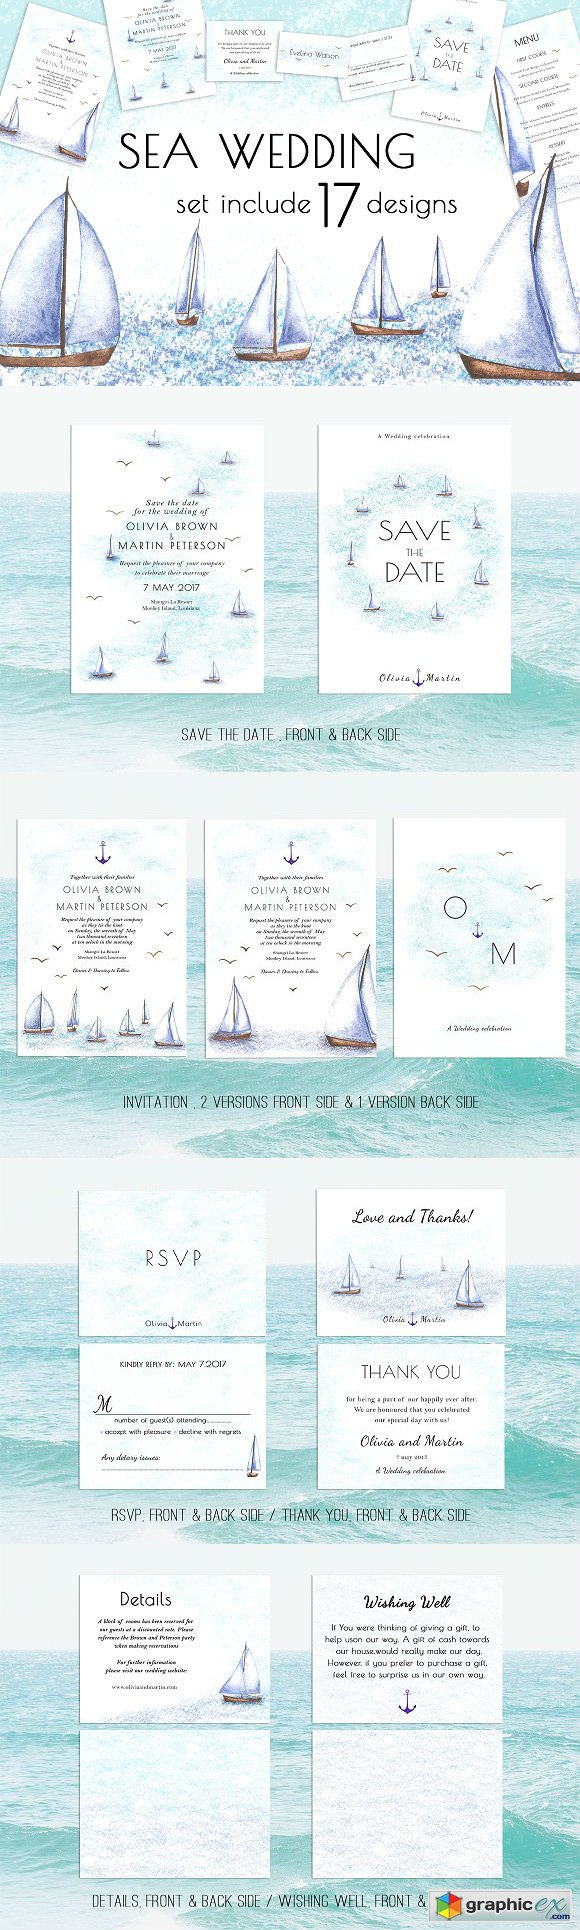 Sea Wedding Invitation Suite